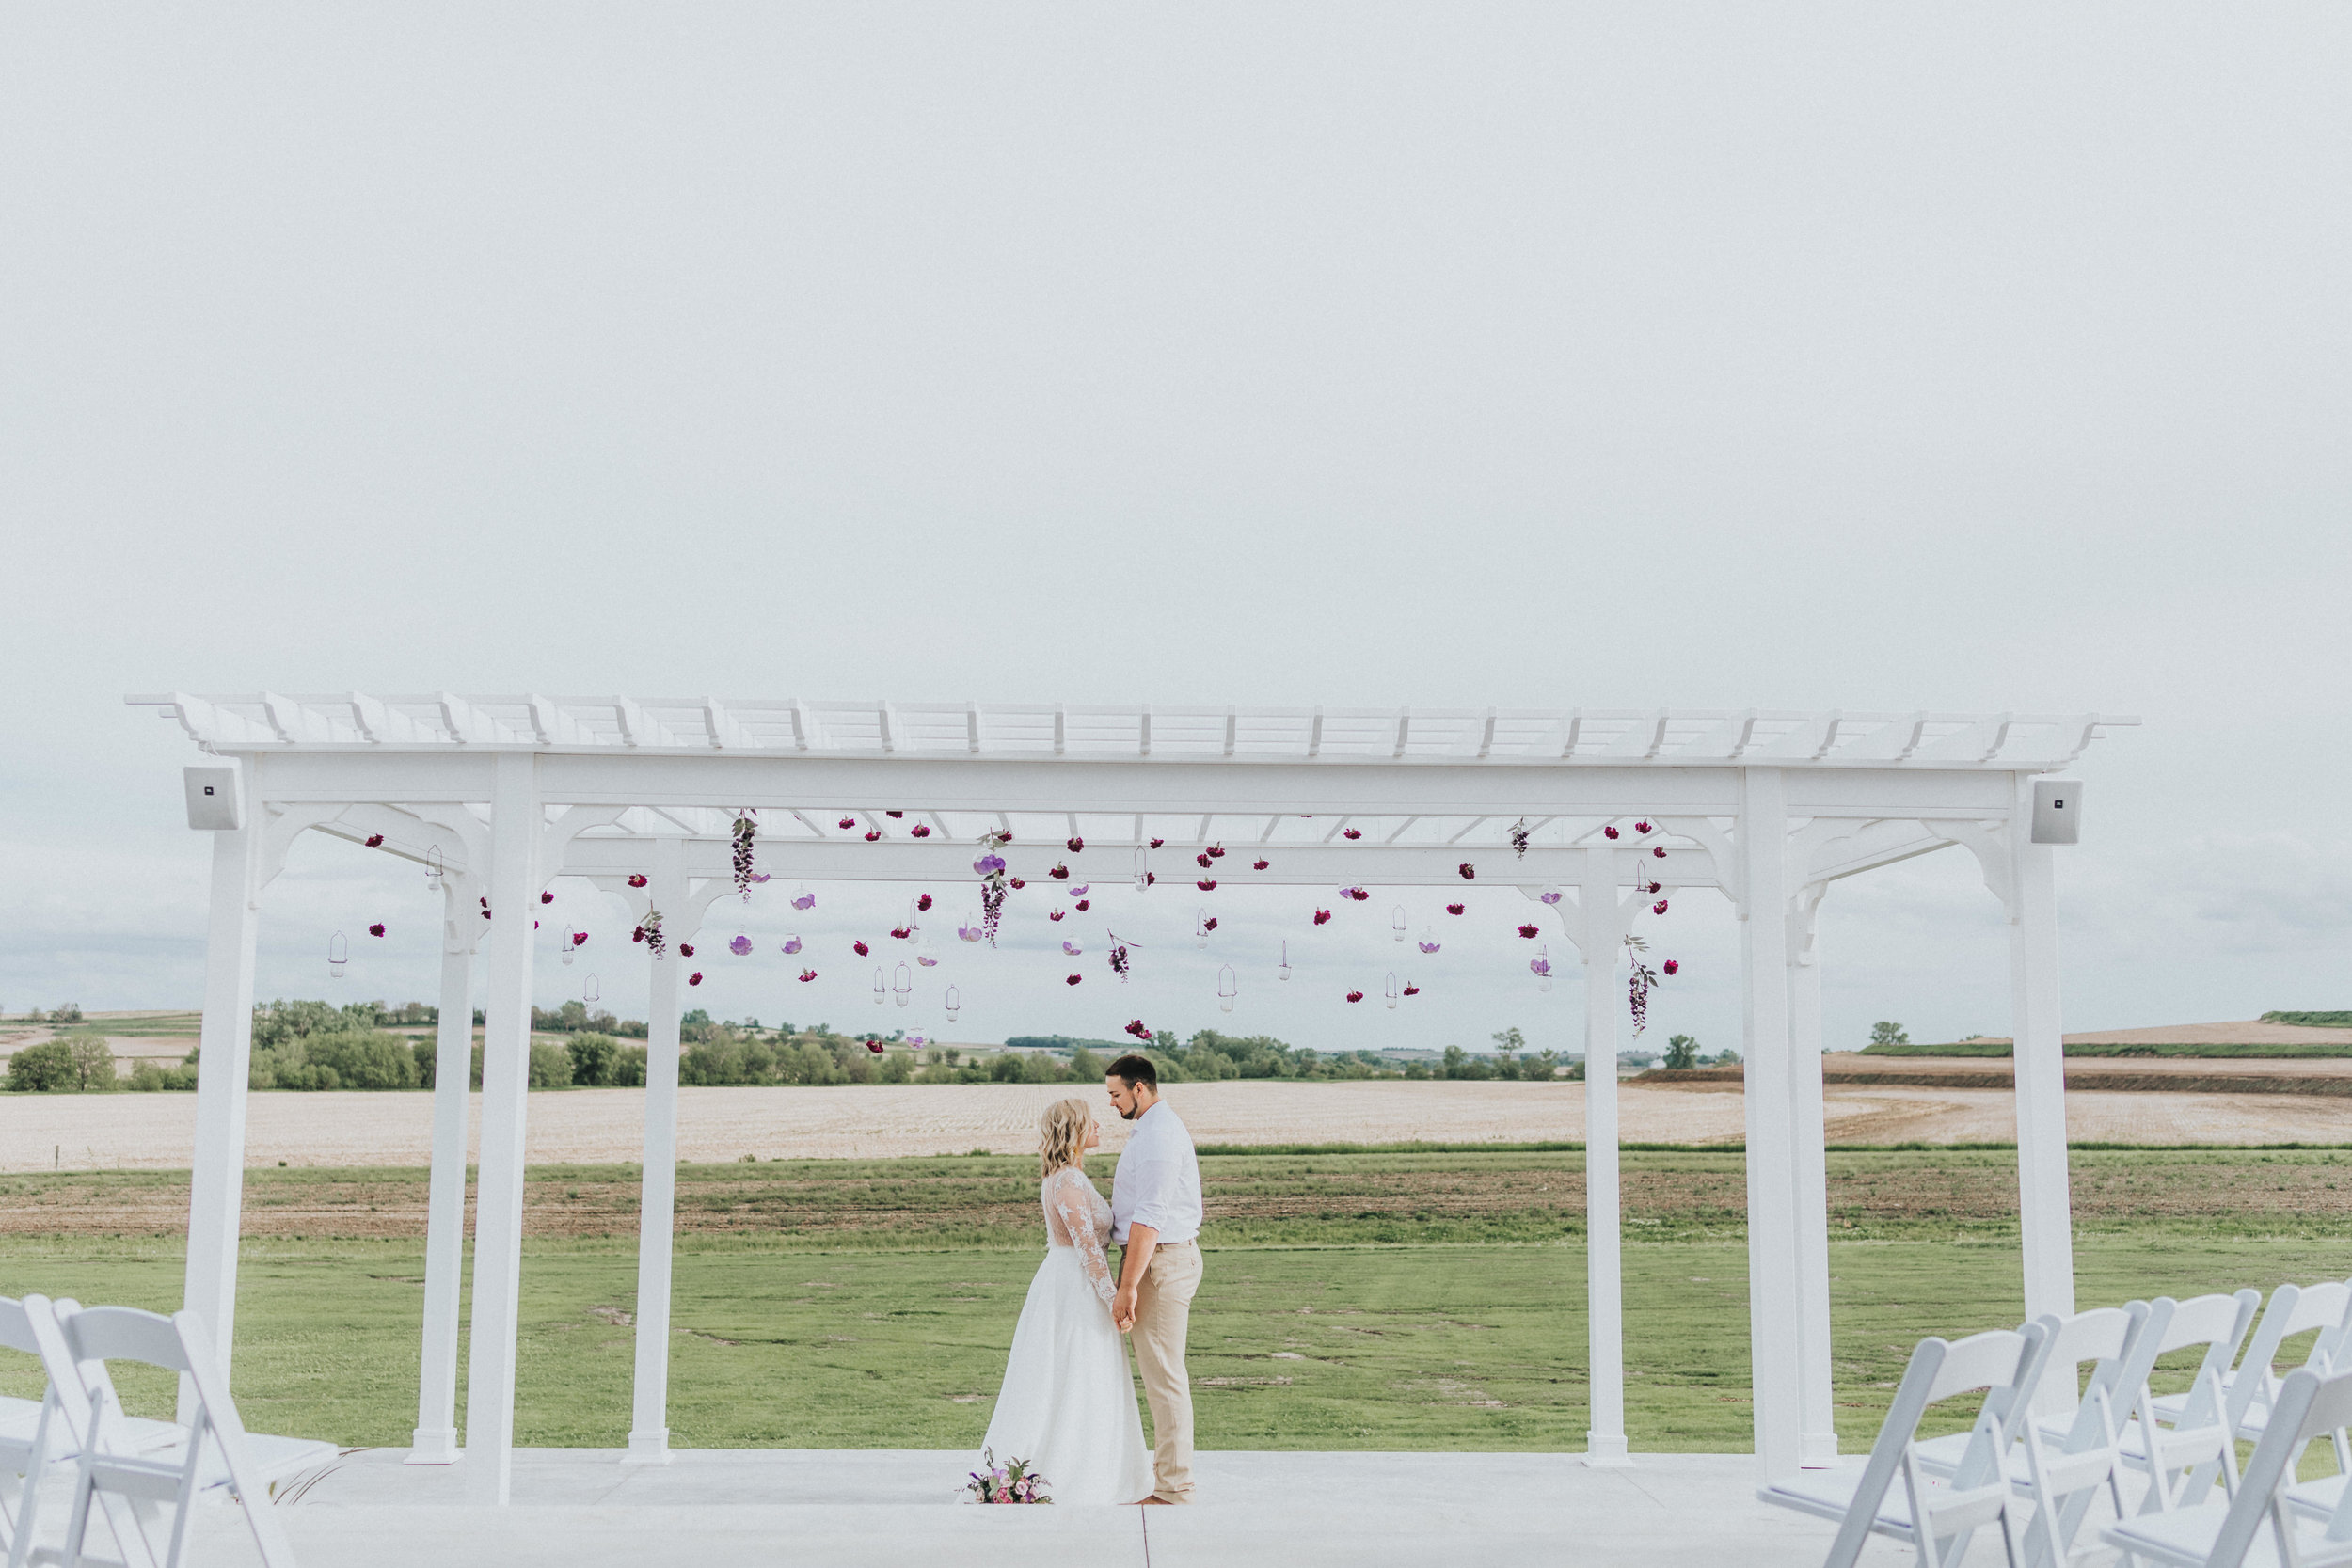 258 tiny-luxe-weddings-iowa-venue-photogeraphy-palace.jpg